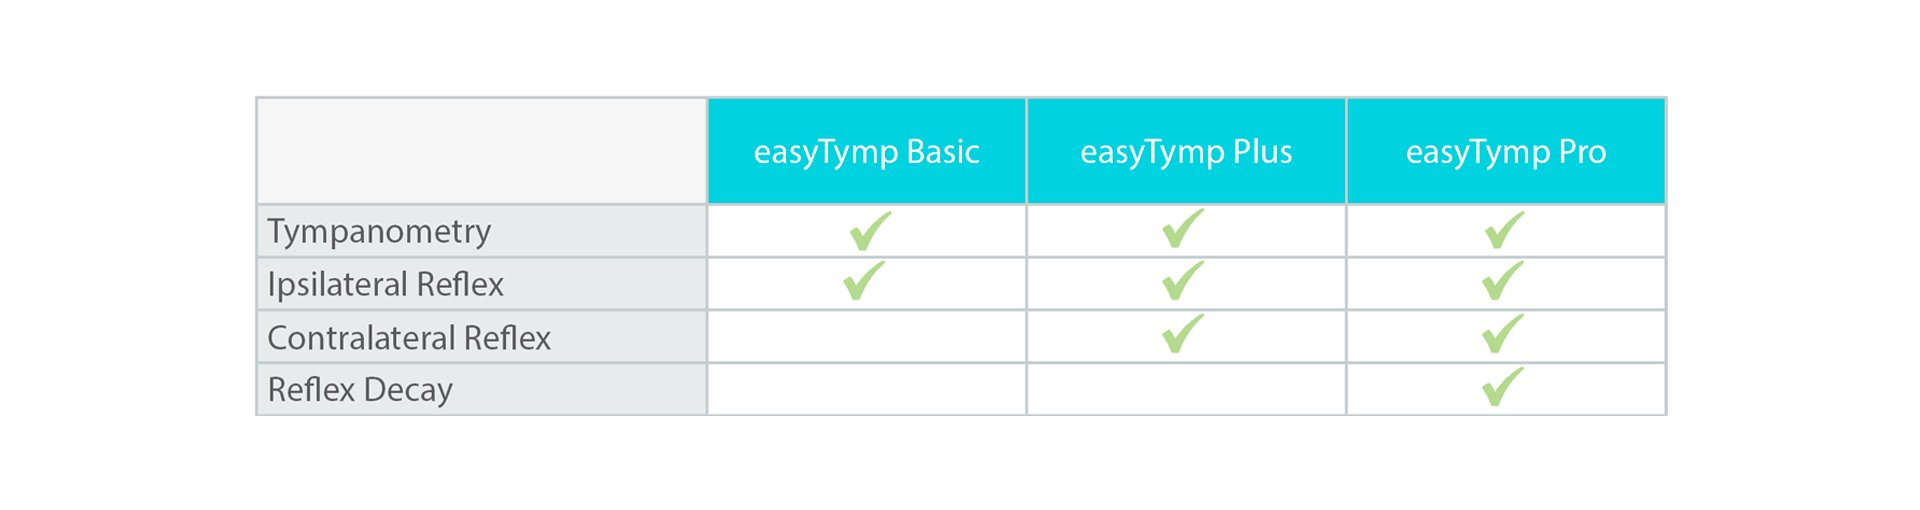 easyTymp versions and tympanometry protocols